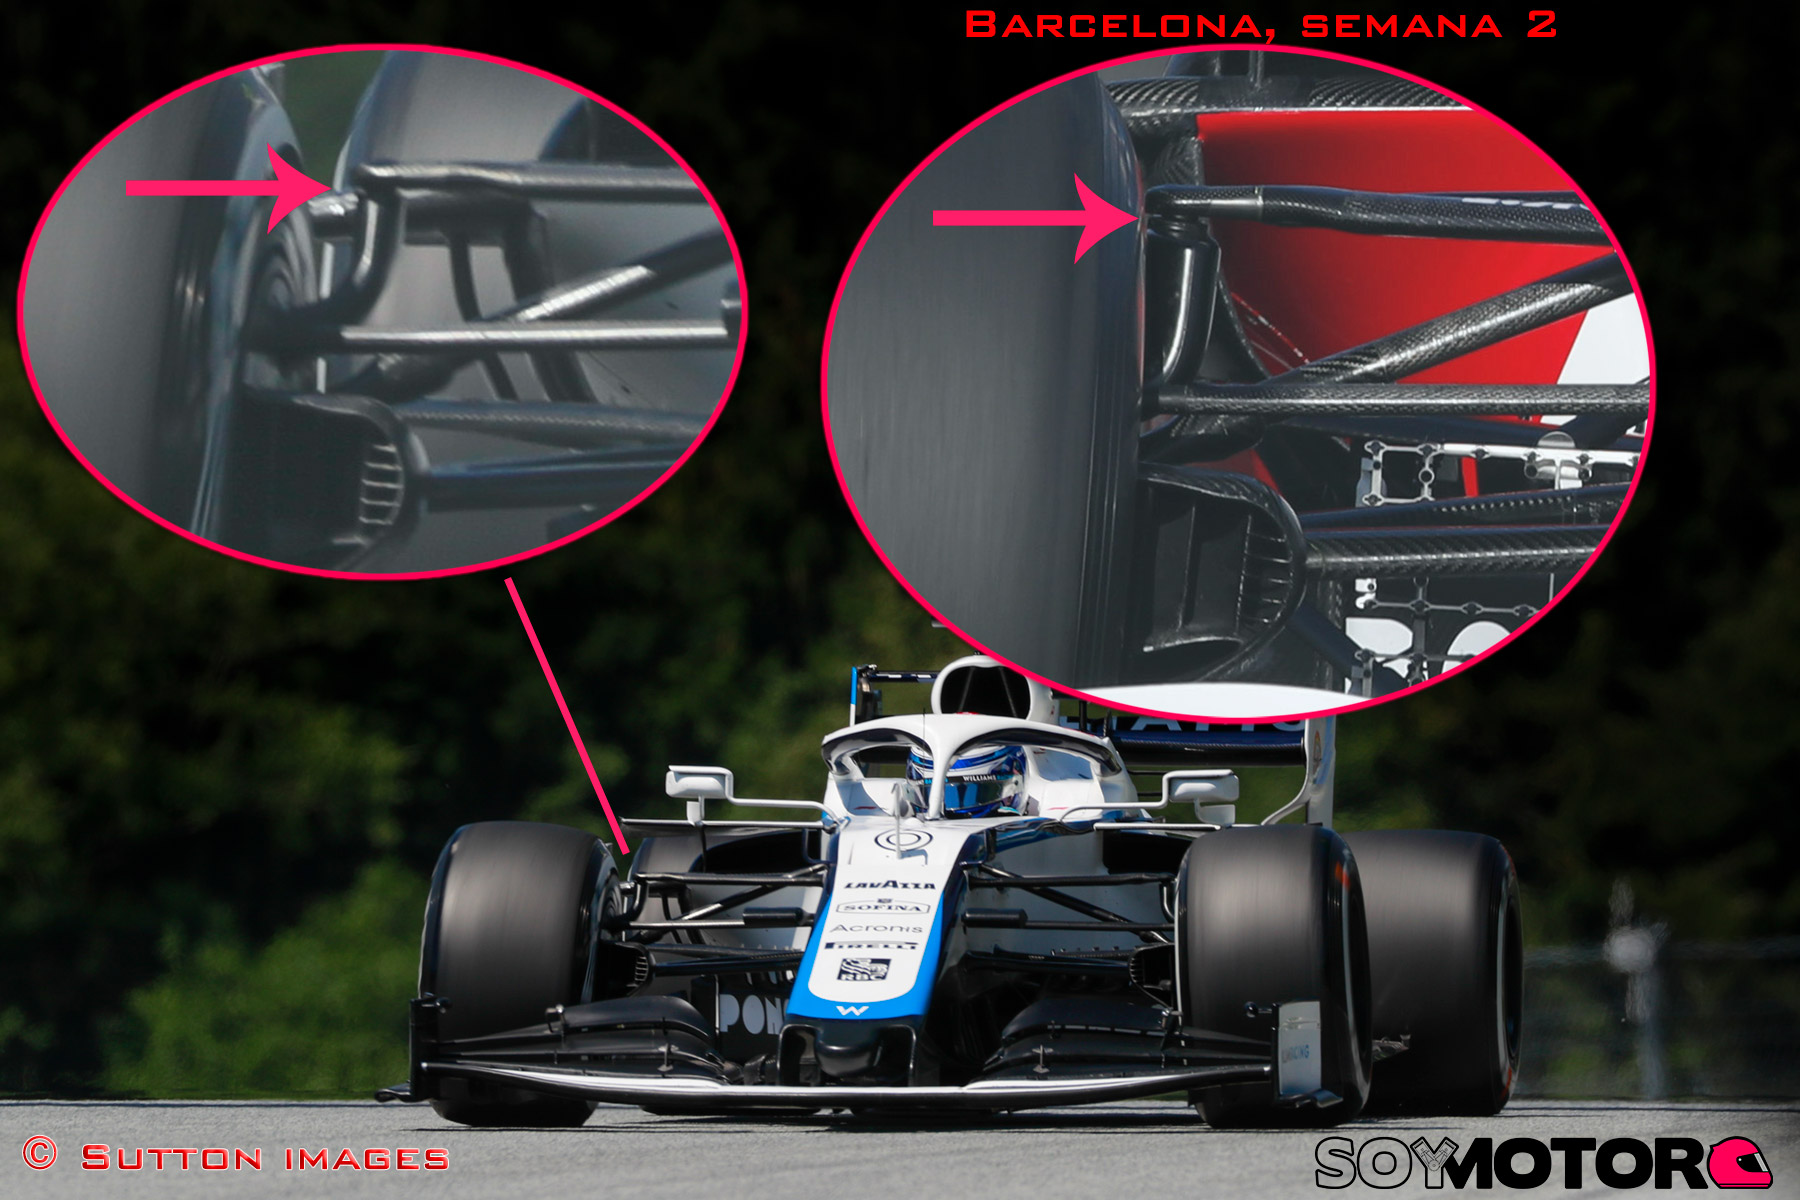 williams-nueva-suspension-delantera.jpg